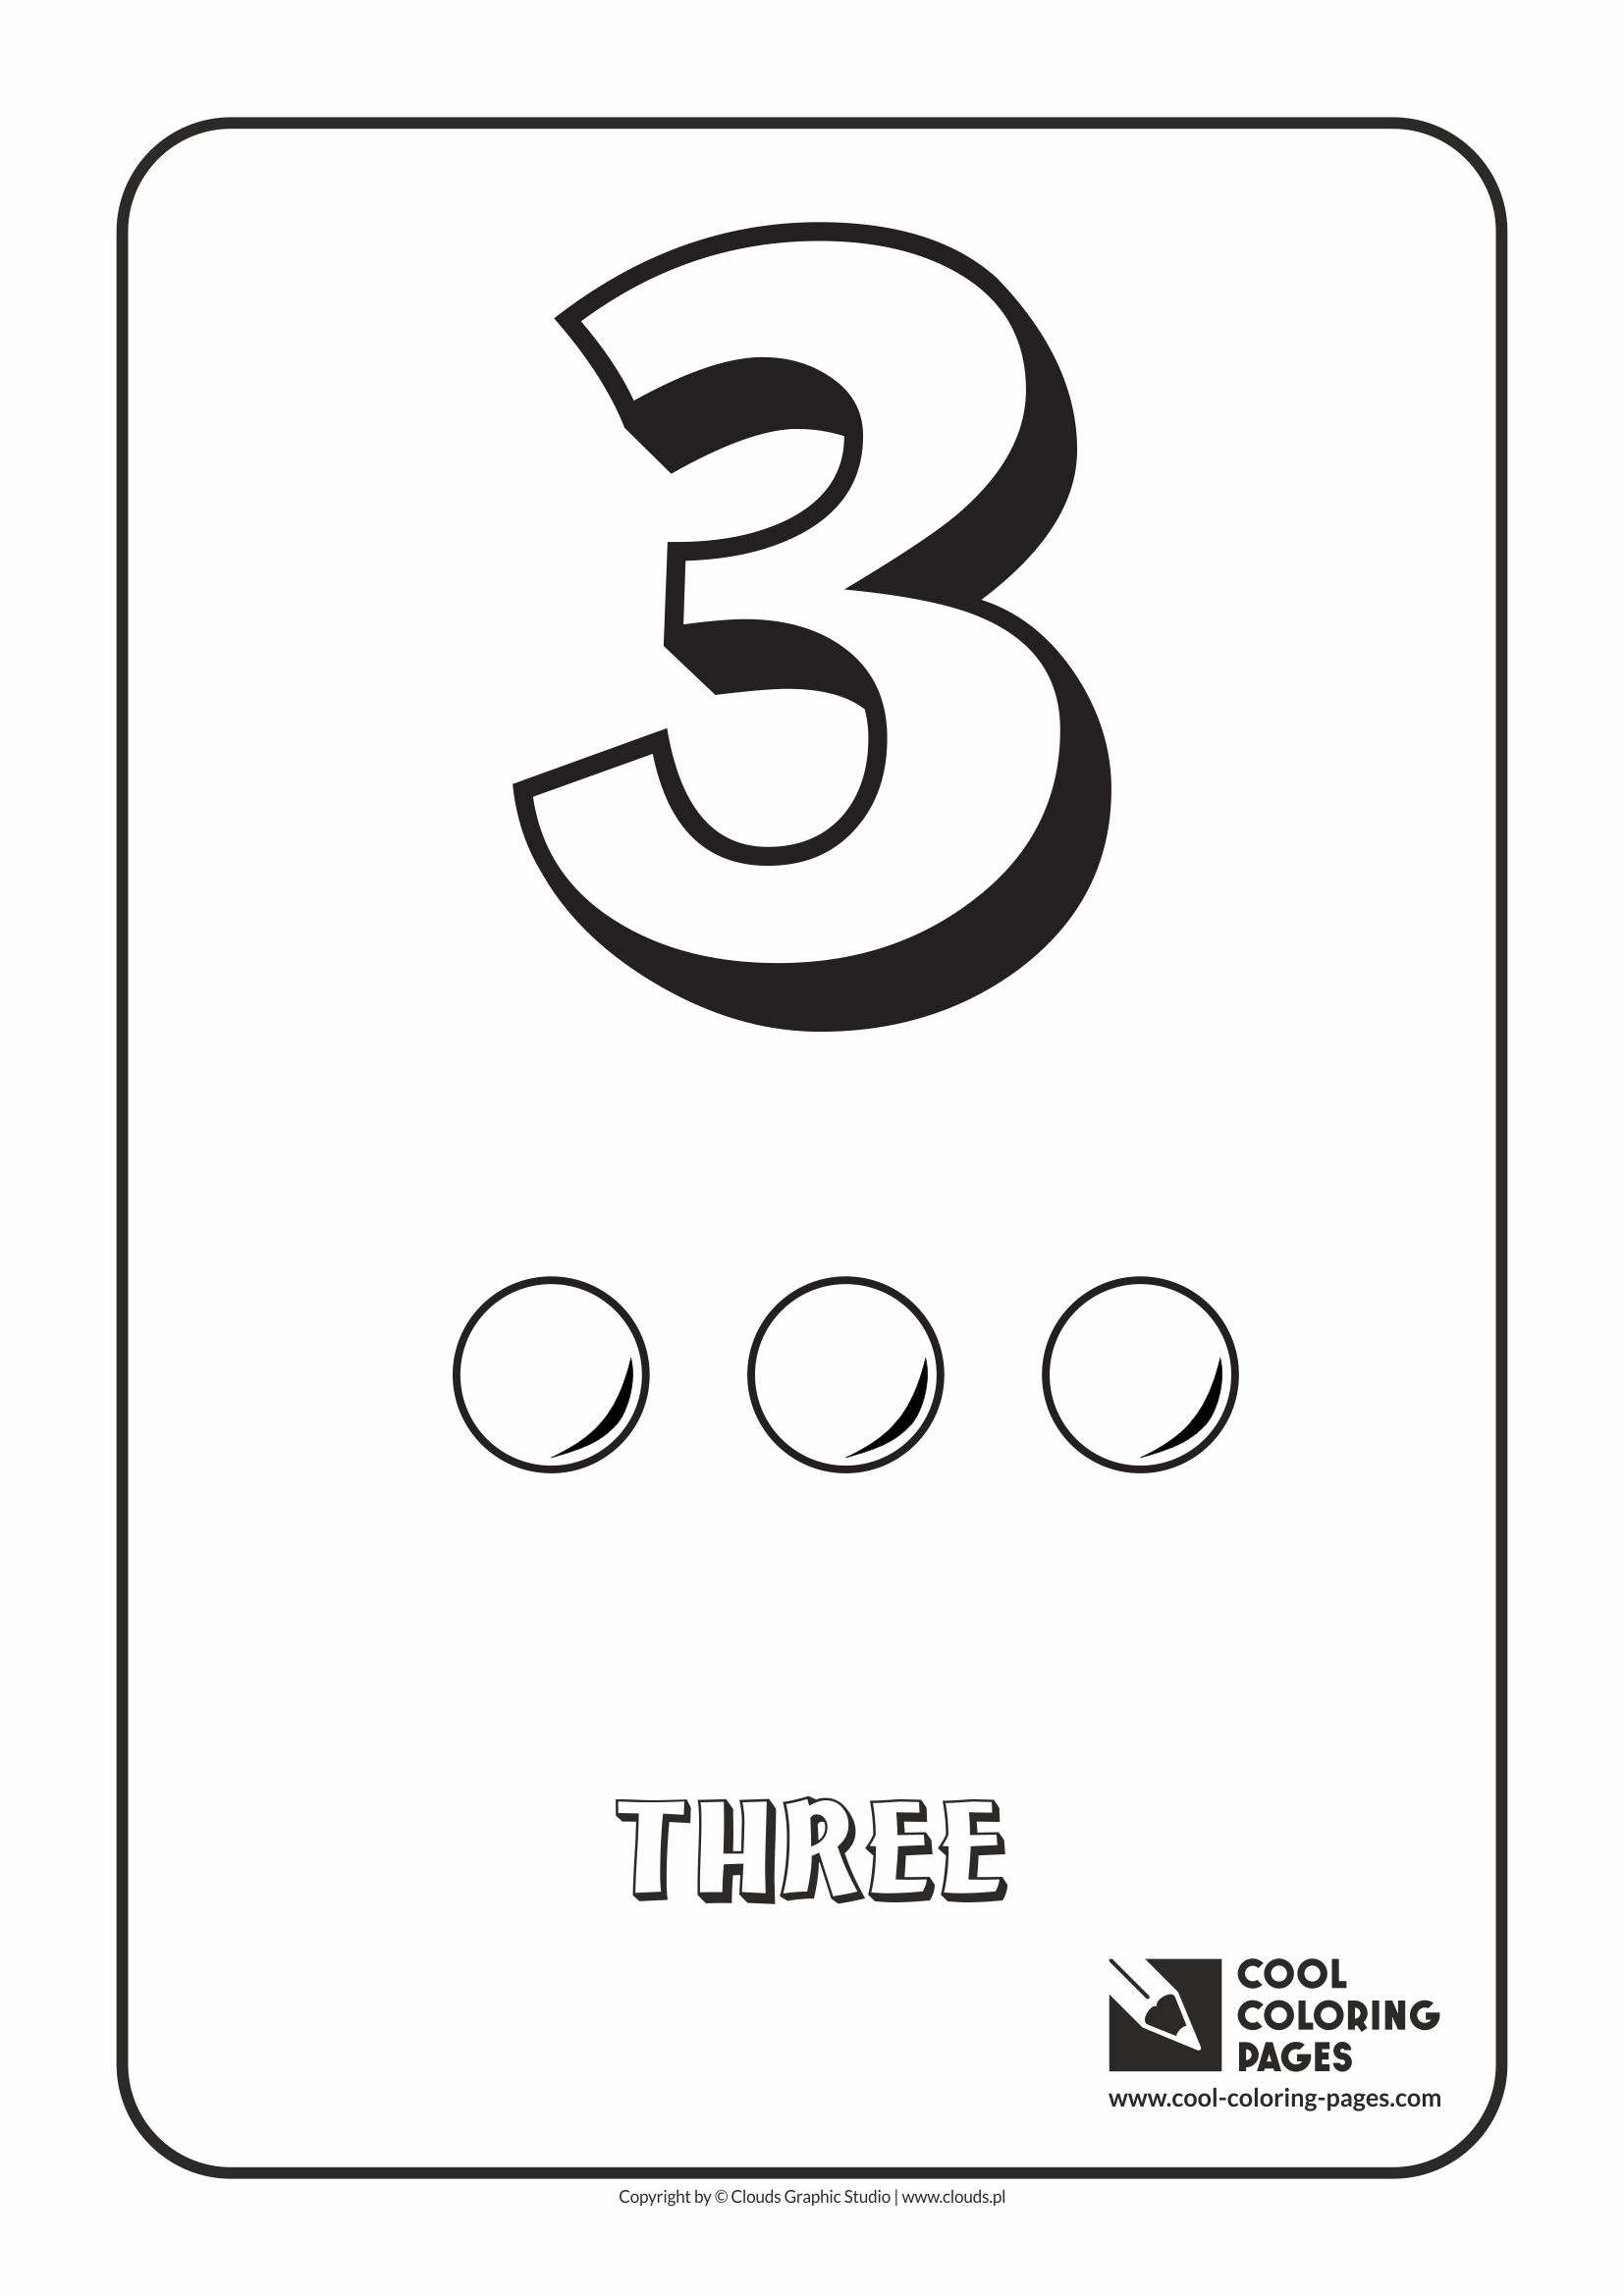 Cool Coloring Pages - Digits / Digit 3 / Coloring page with digit 3